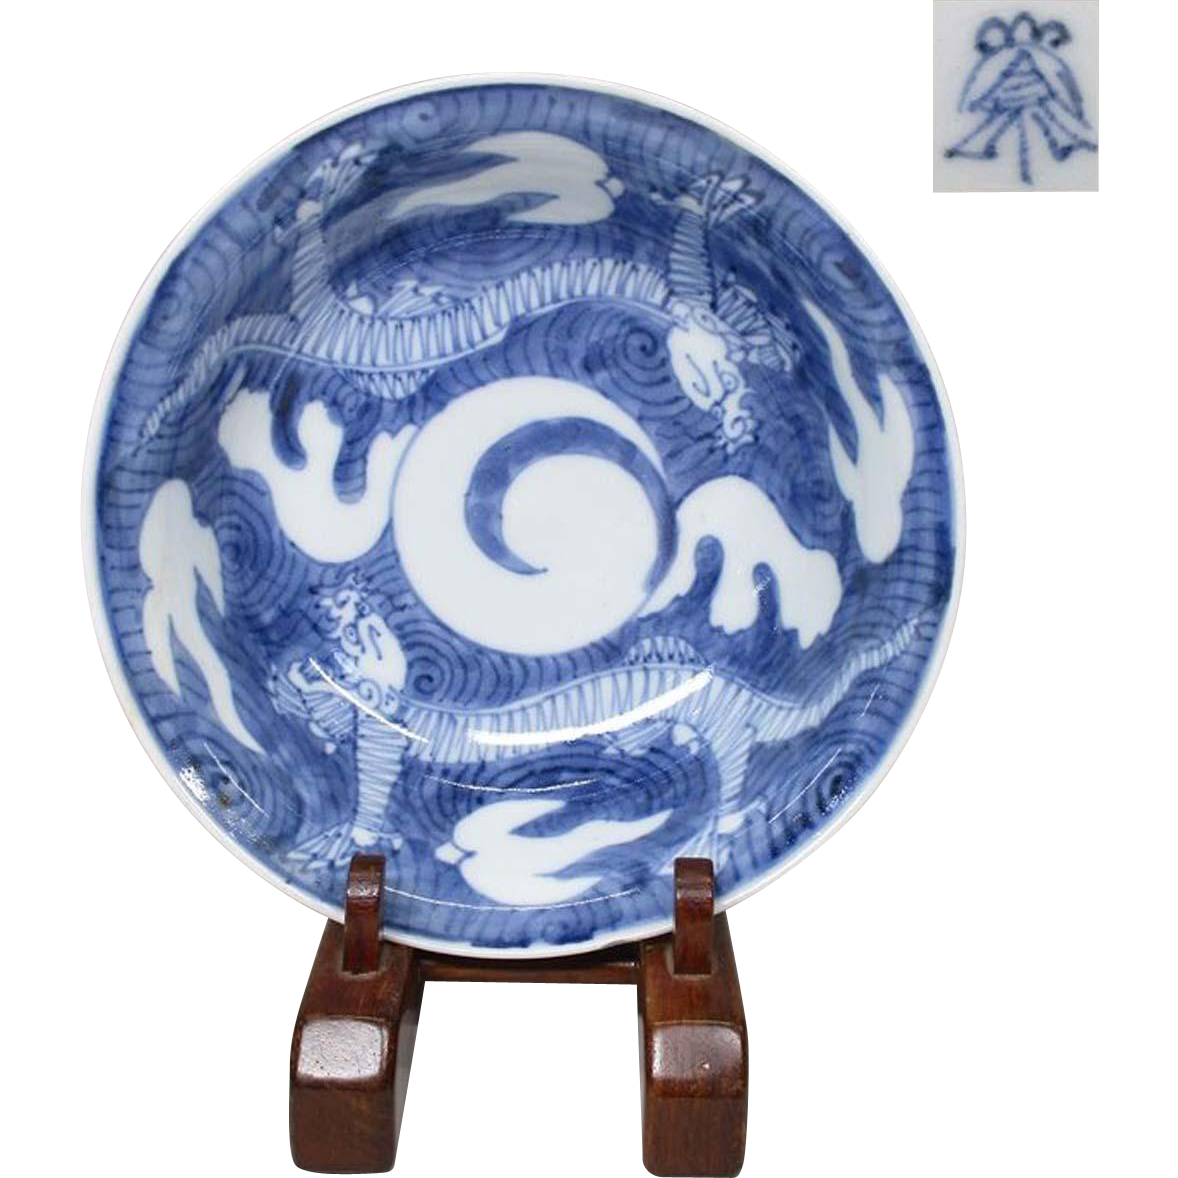 Japanese Antique Imari Porcelain Dish Edo 18th century Dragon and Ghost Story